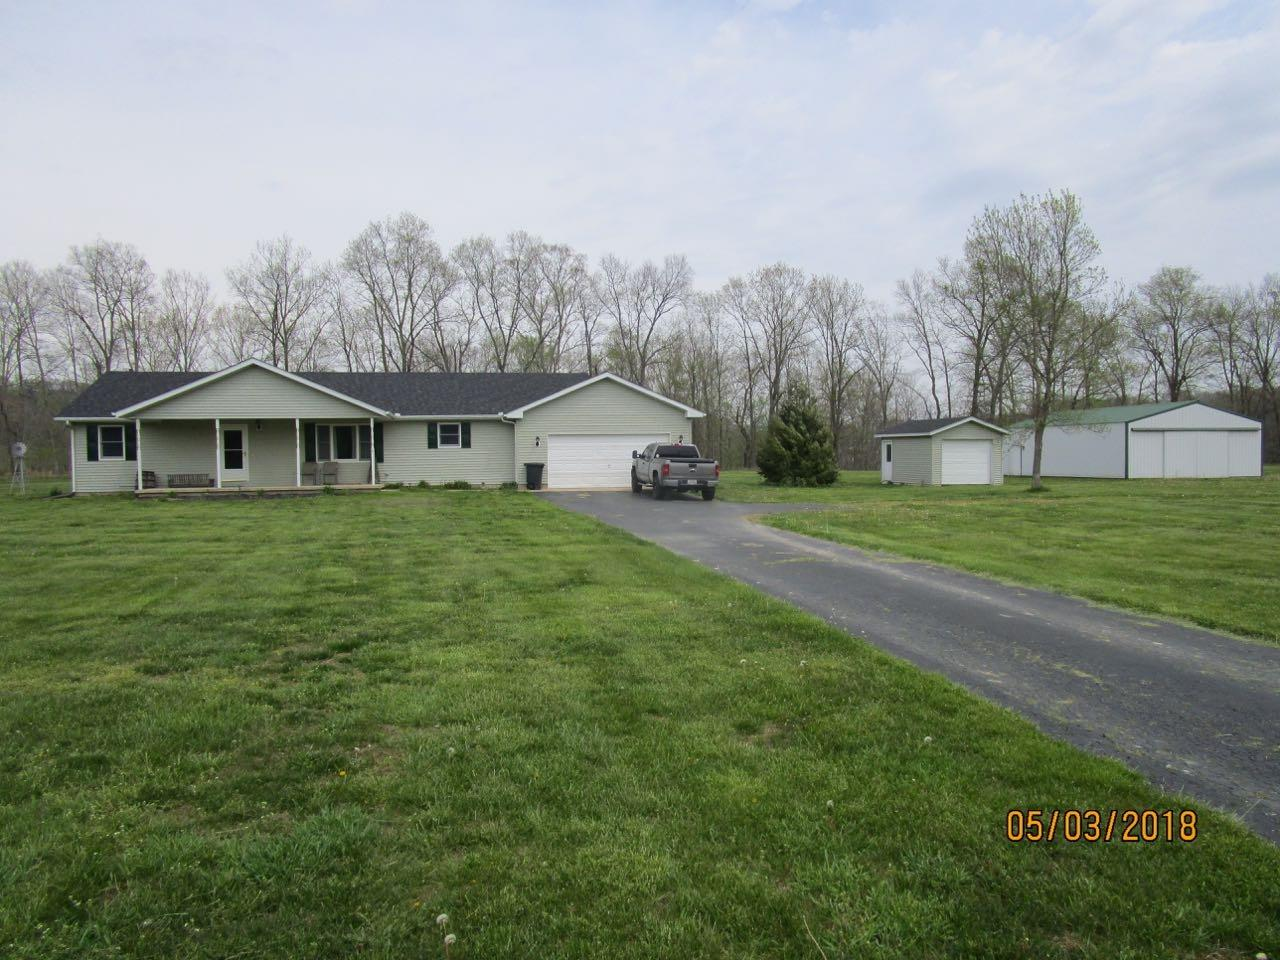 572 Laporte Ln Adams Co., OH